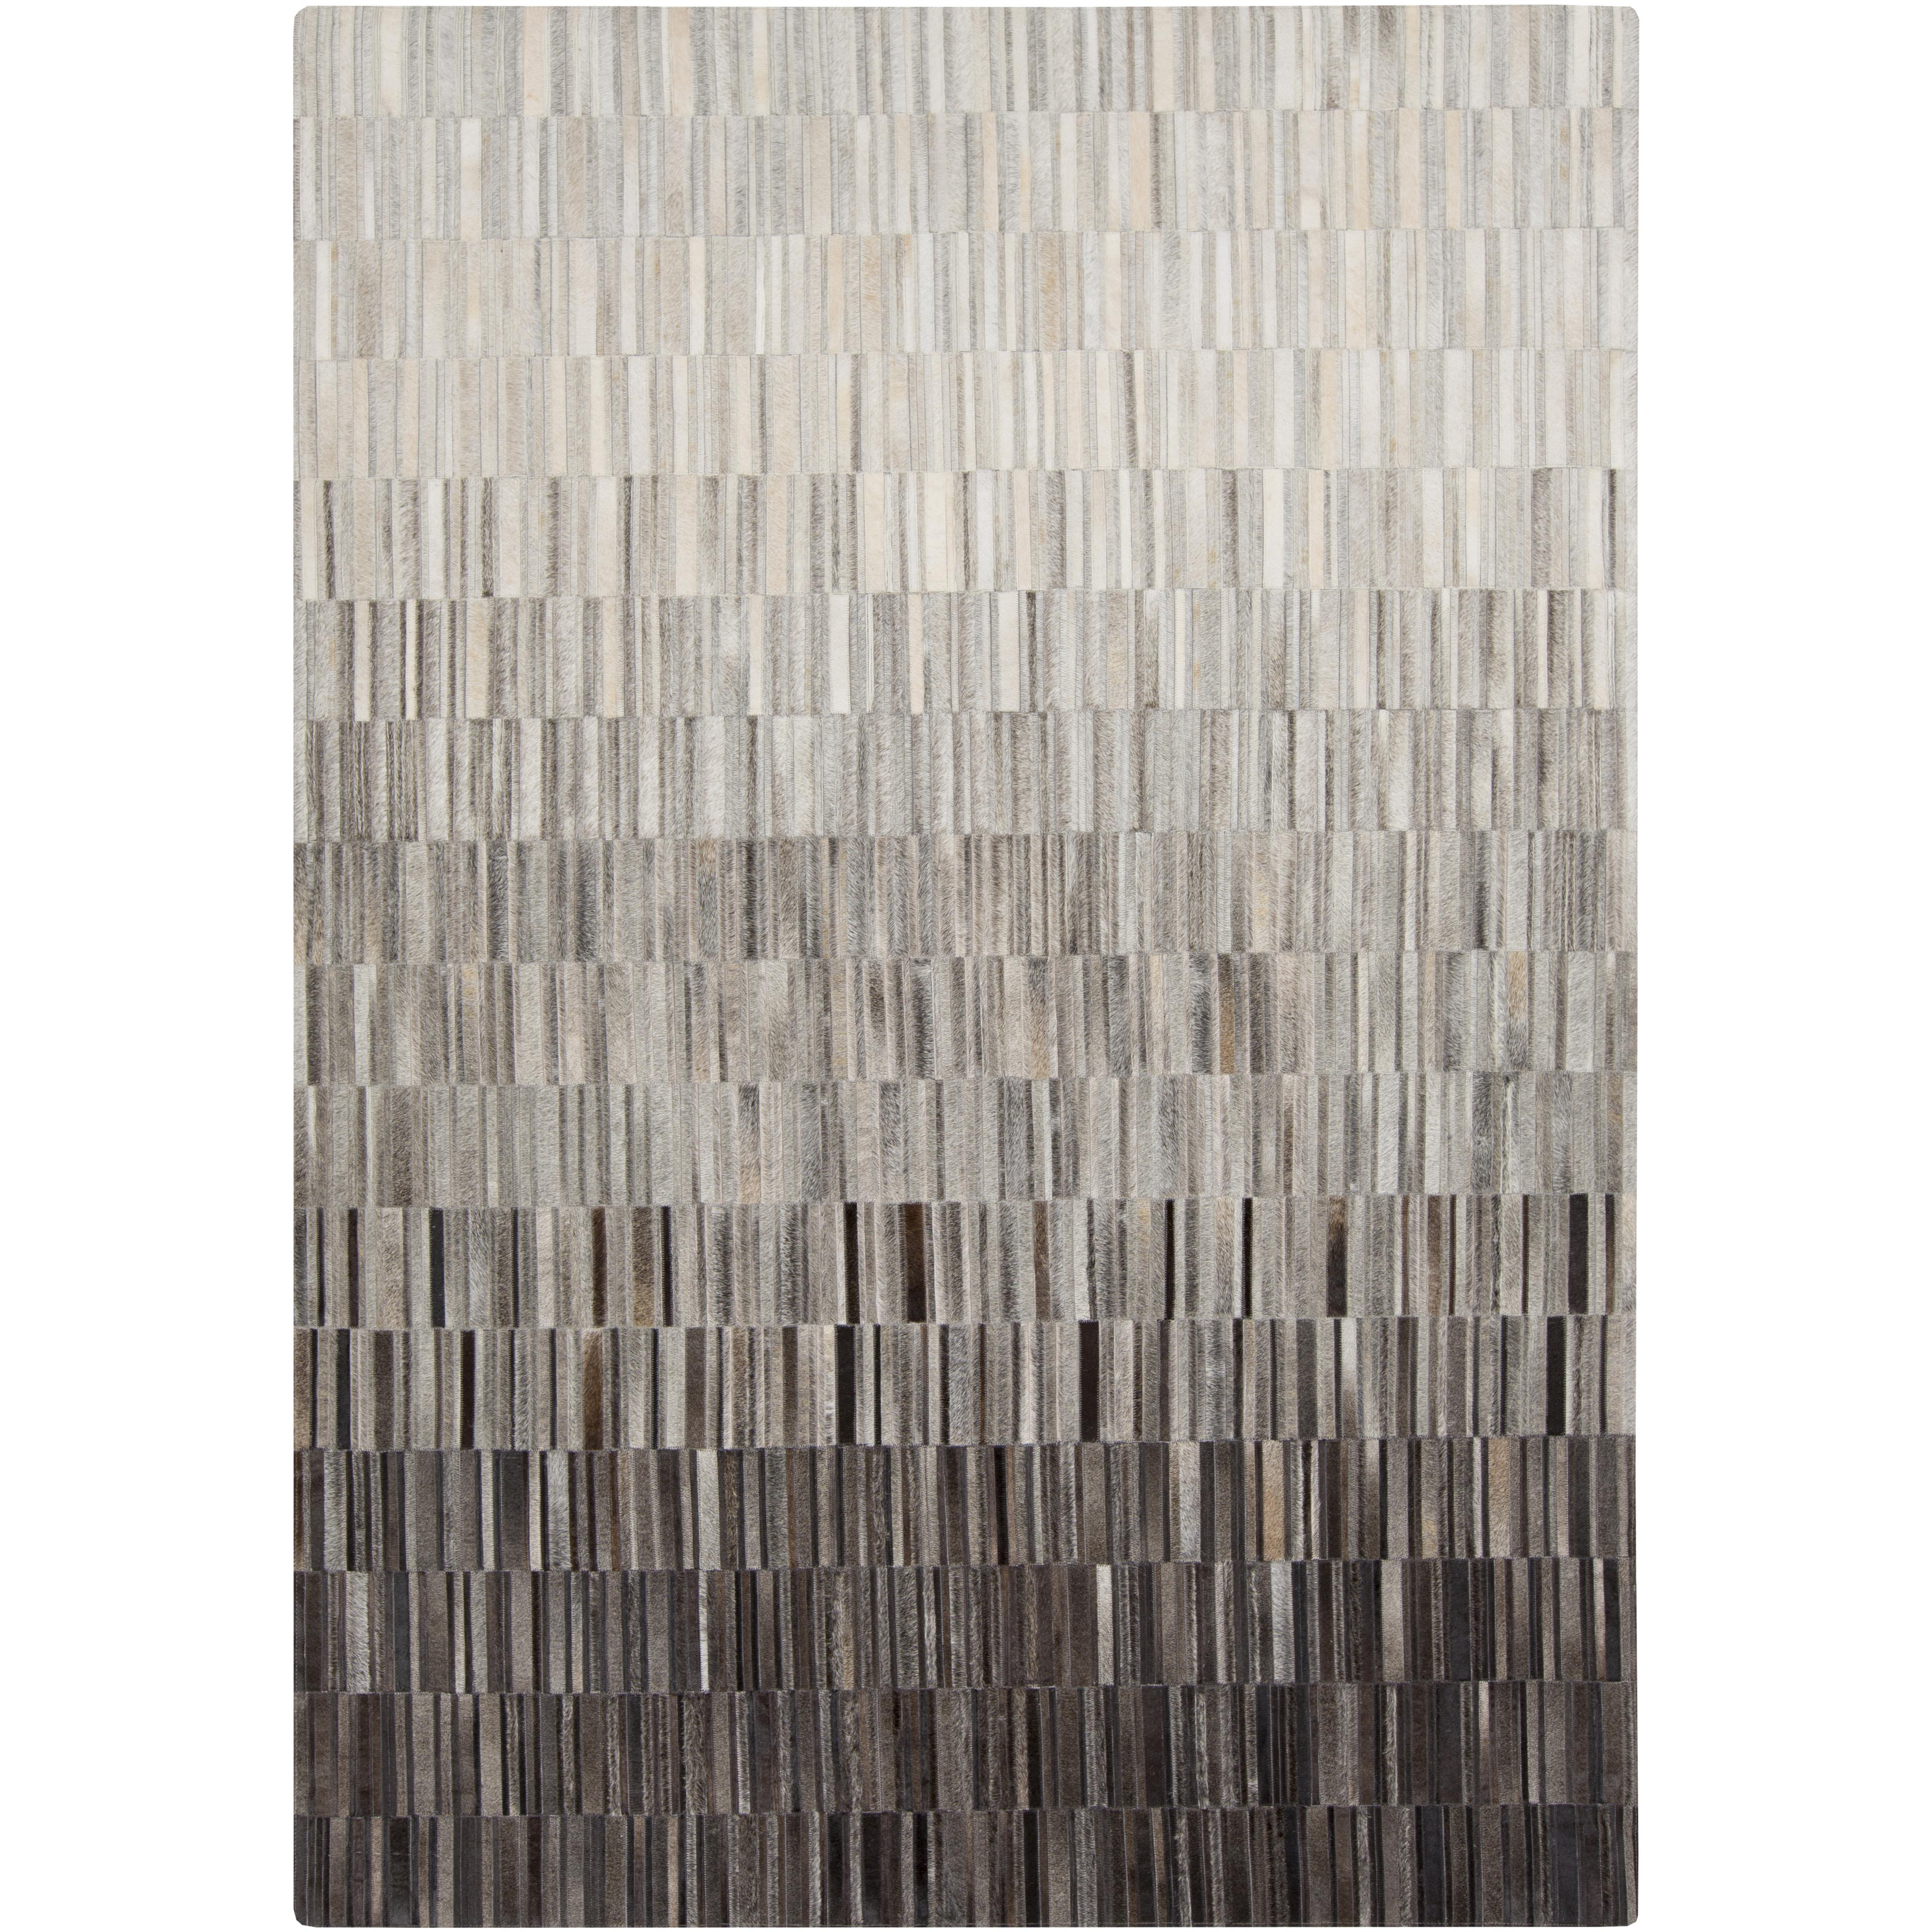 Outback 5' x 8' by Ruby-Gordon Accents at Ruby Gordon Home